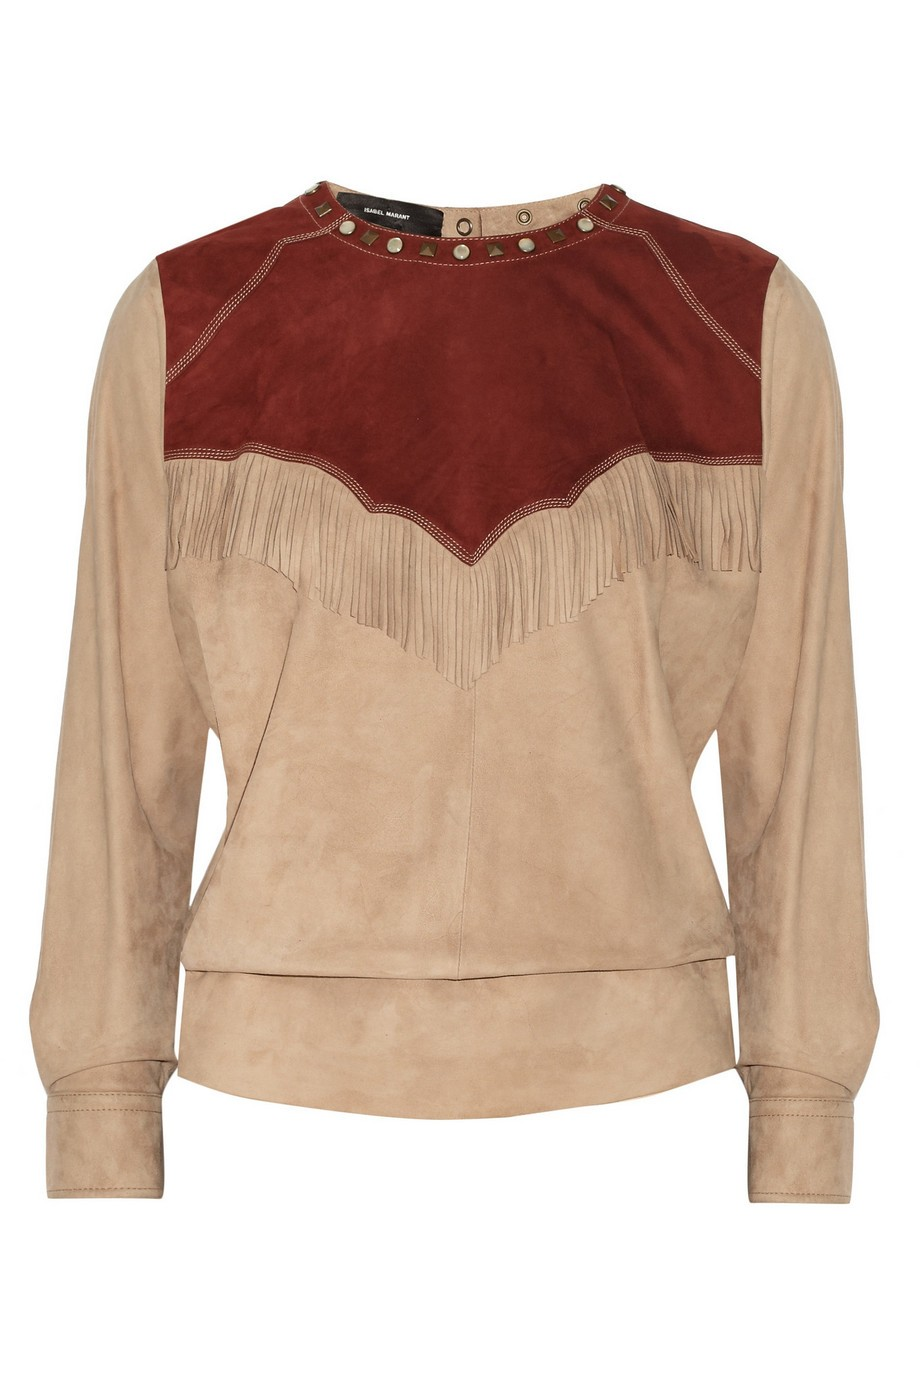 Oliver embellished suede top